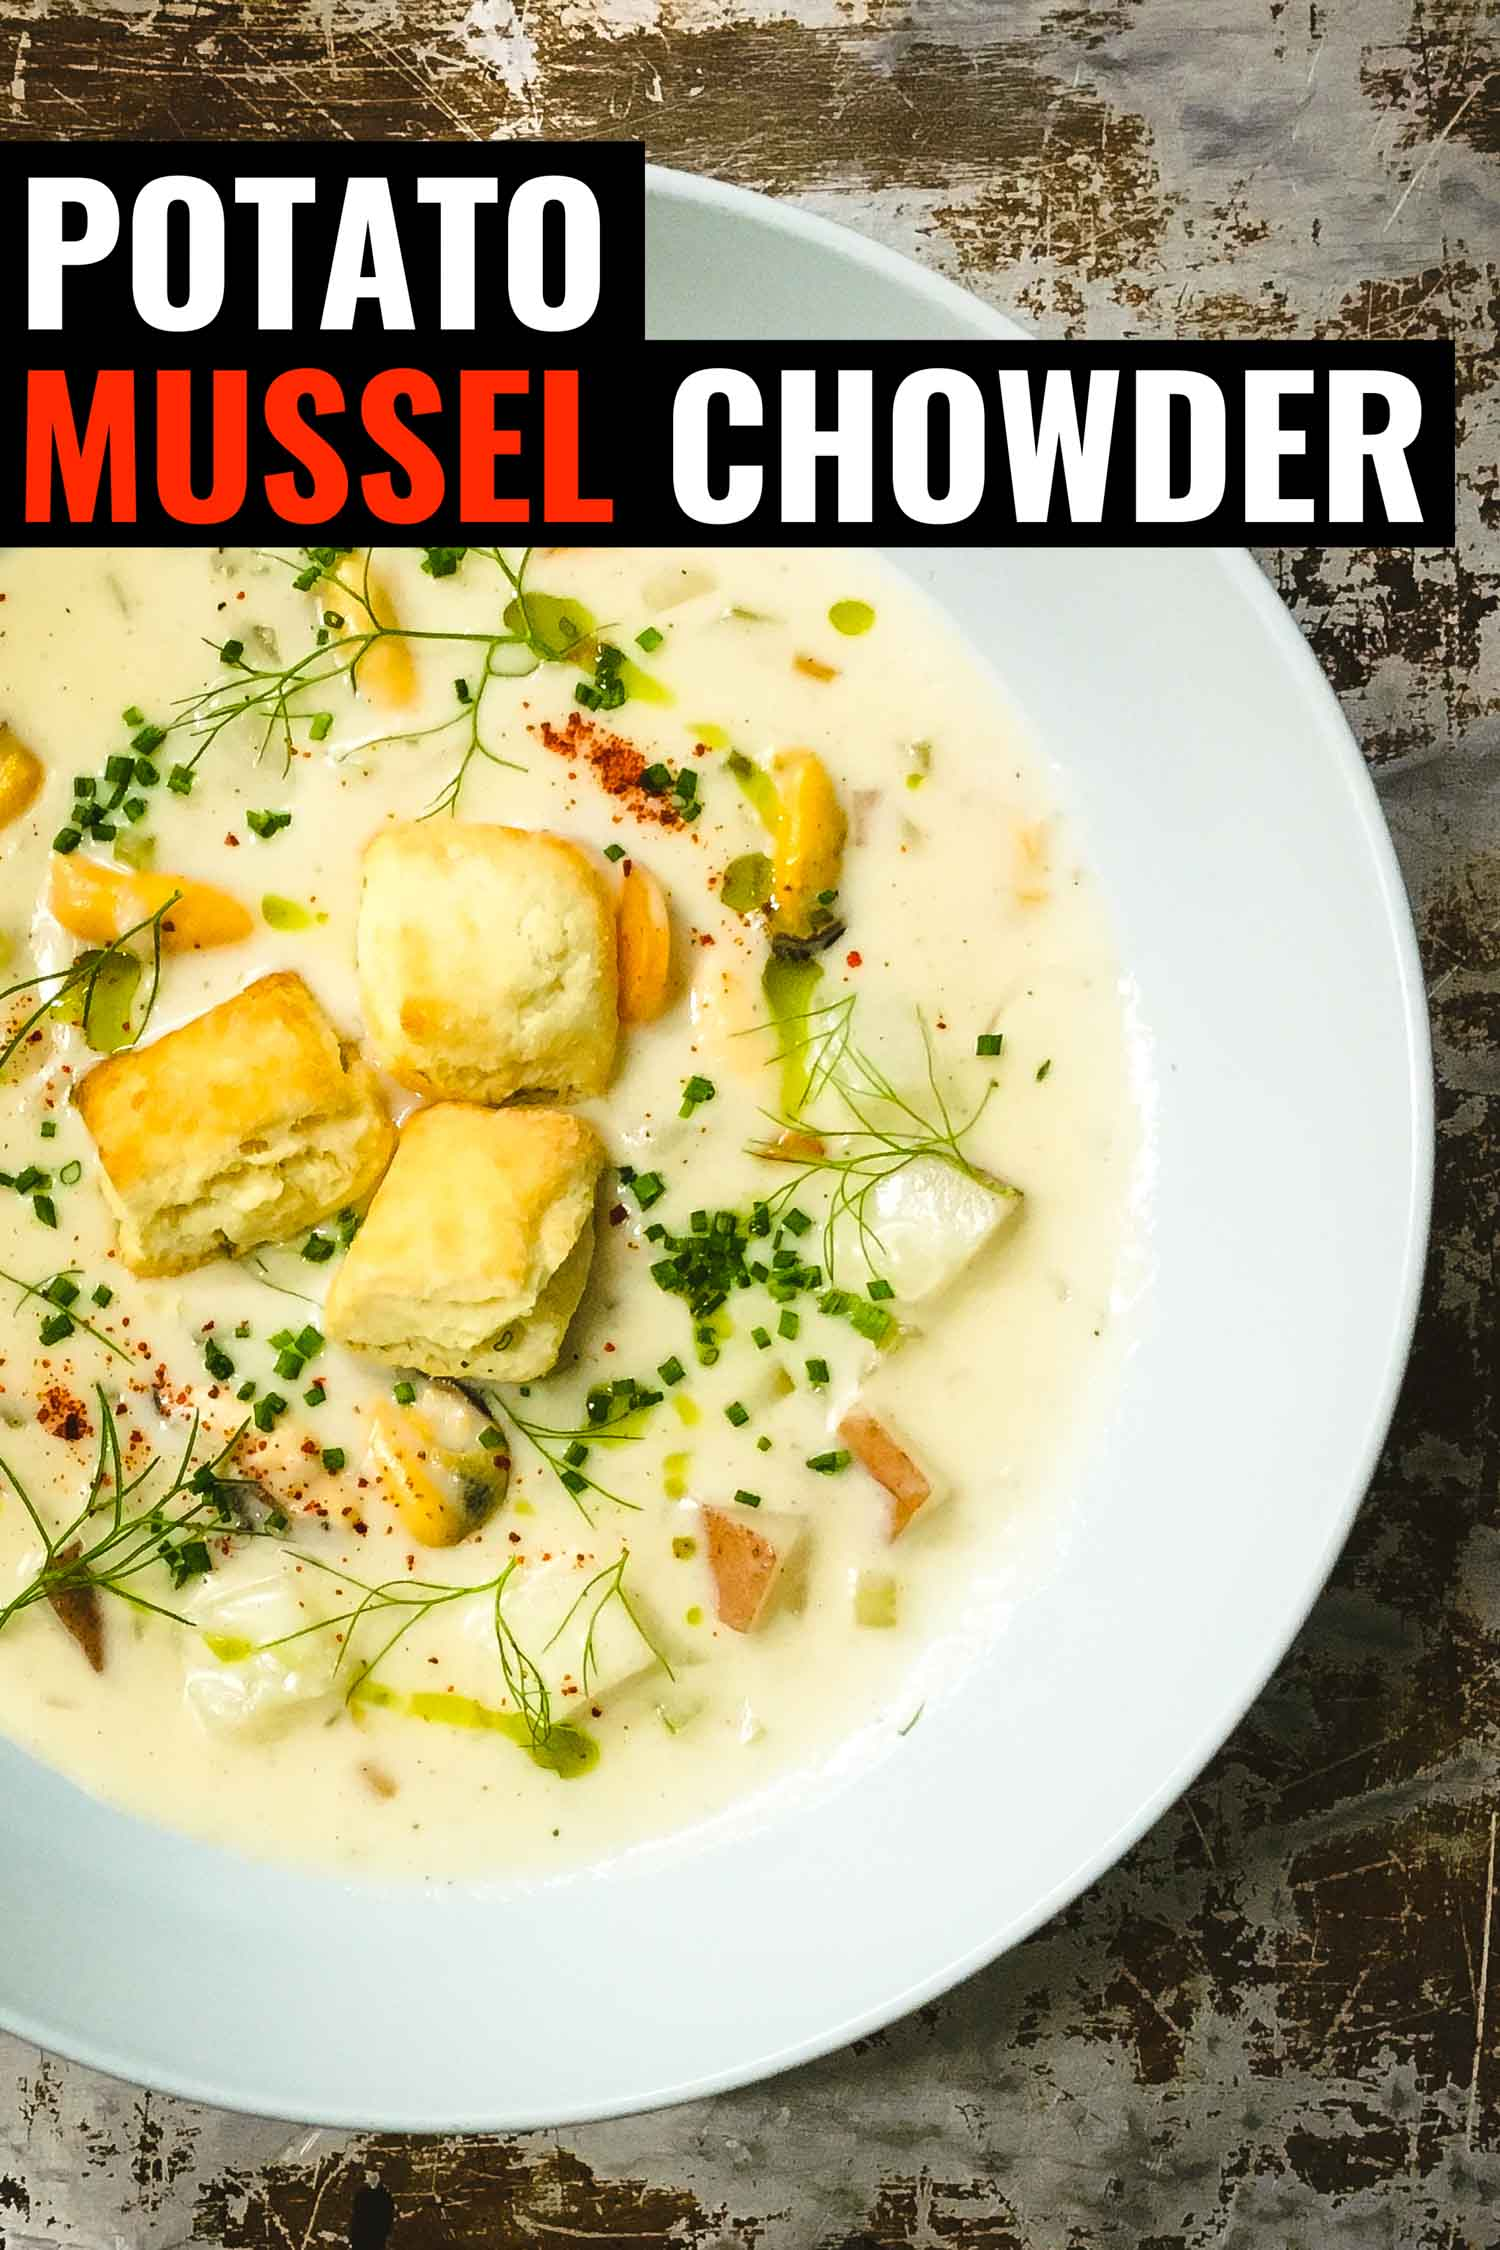 potato mussel chowder on a rustic background